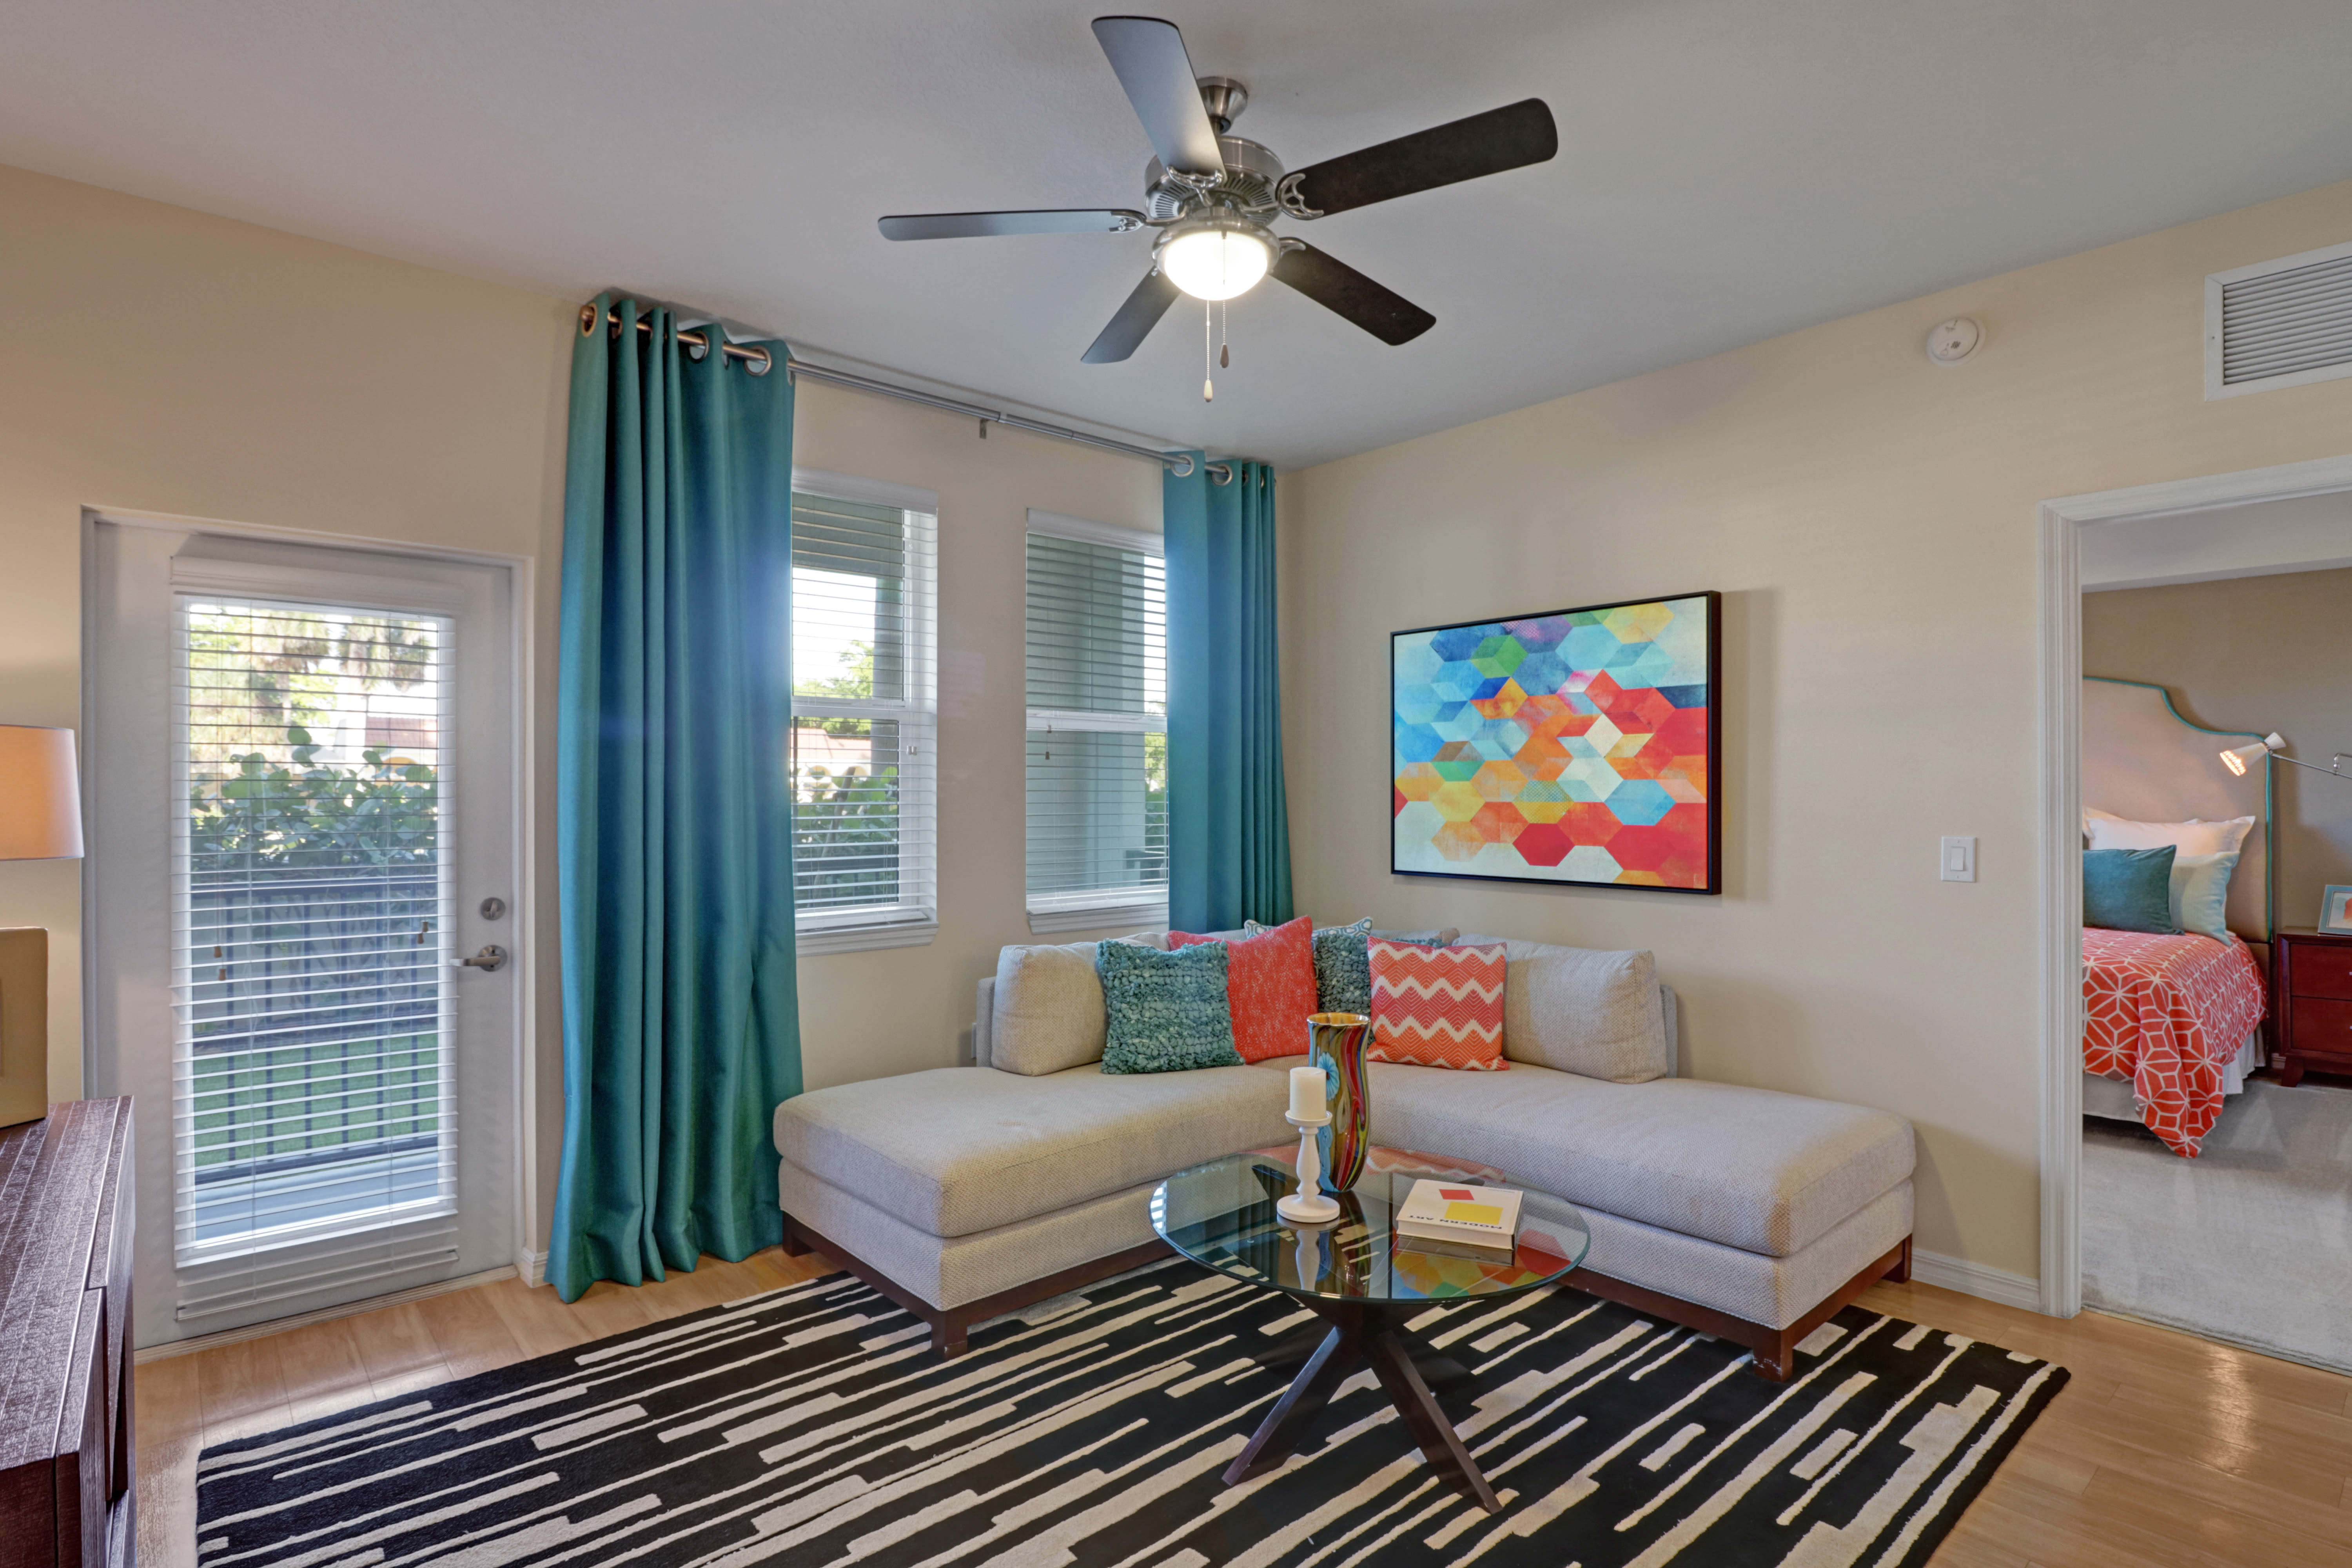 Corner couch in living room at Linden Pointe in Pompano Beach, Florida has large windows supplying lots of natural light